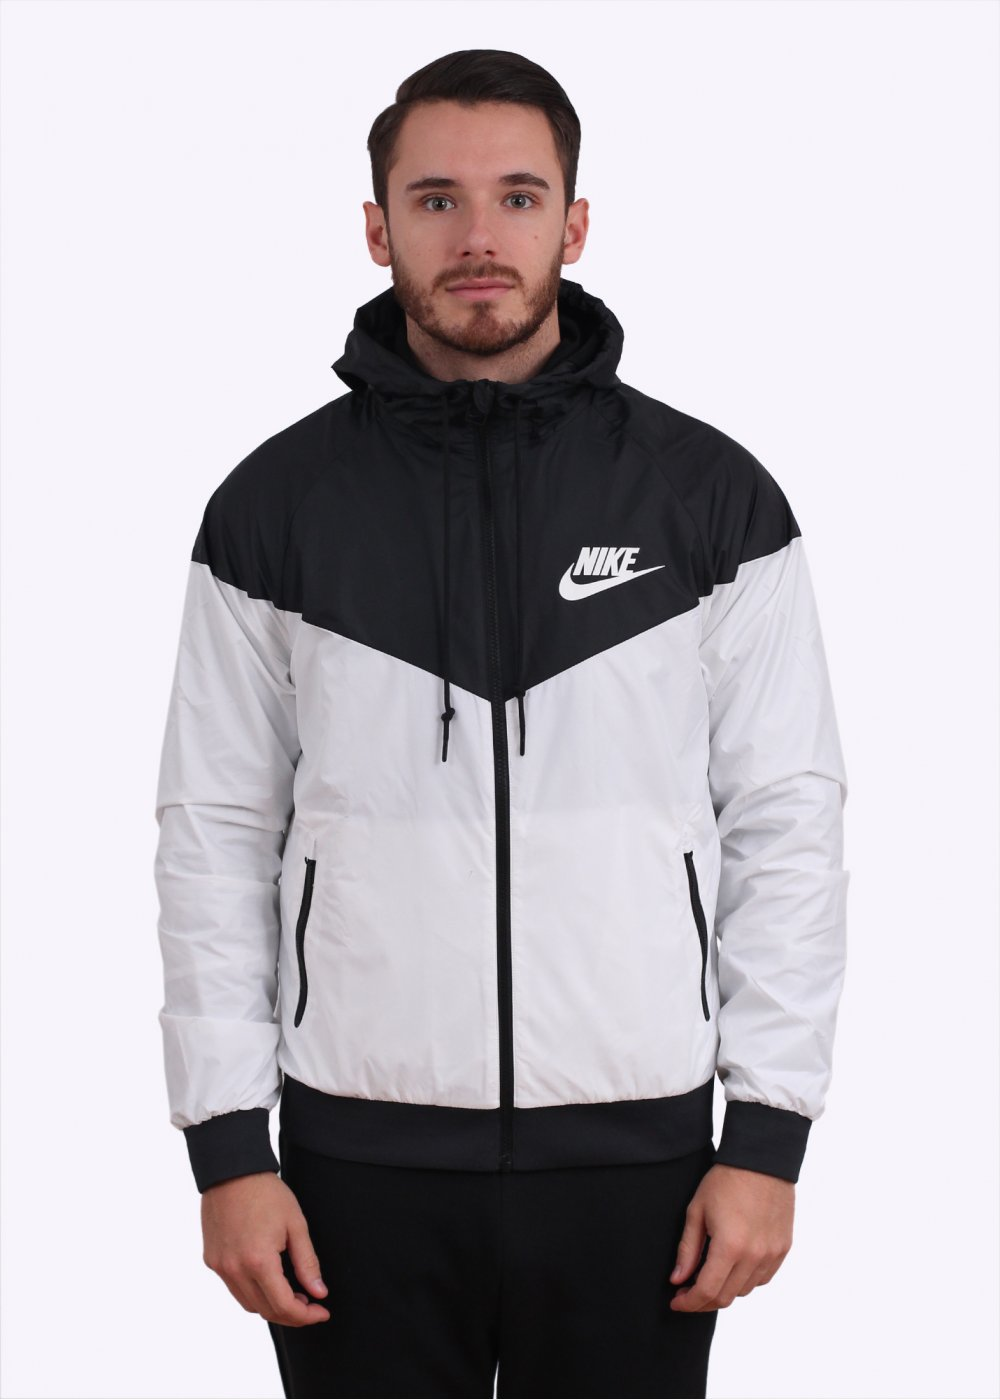 new concept 163f4 72611 Windrunner Jacket - White Black